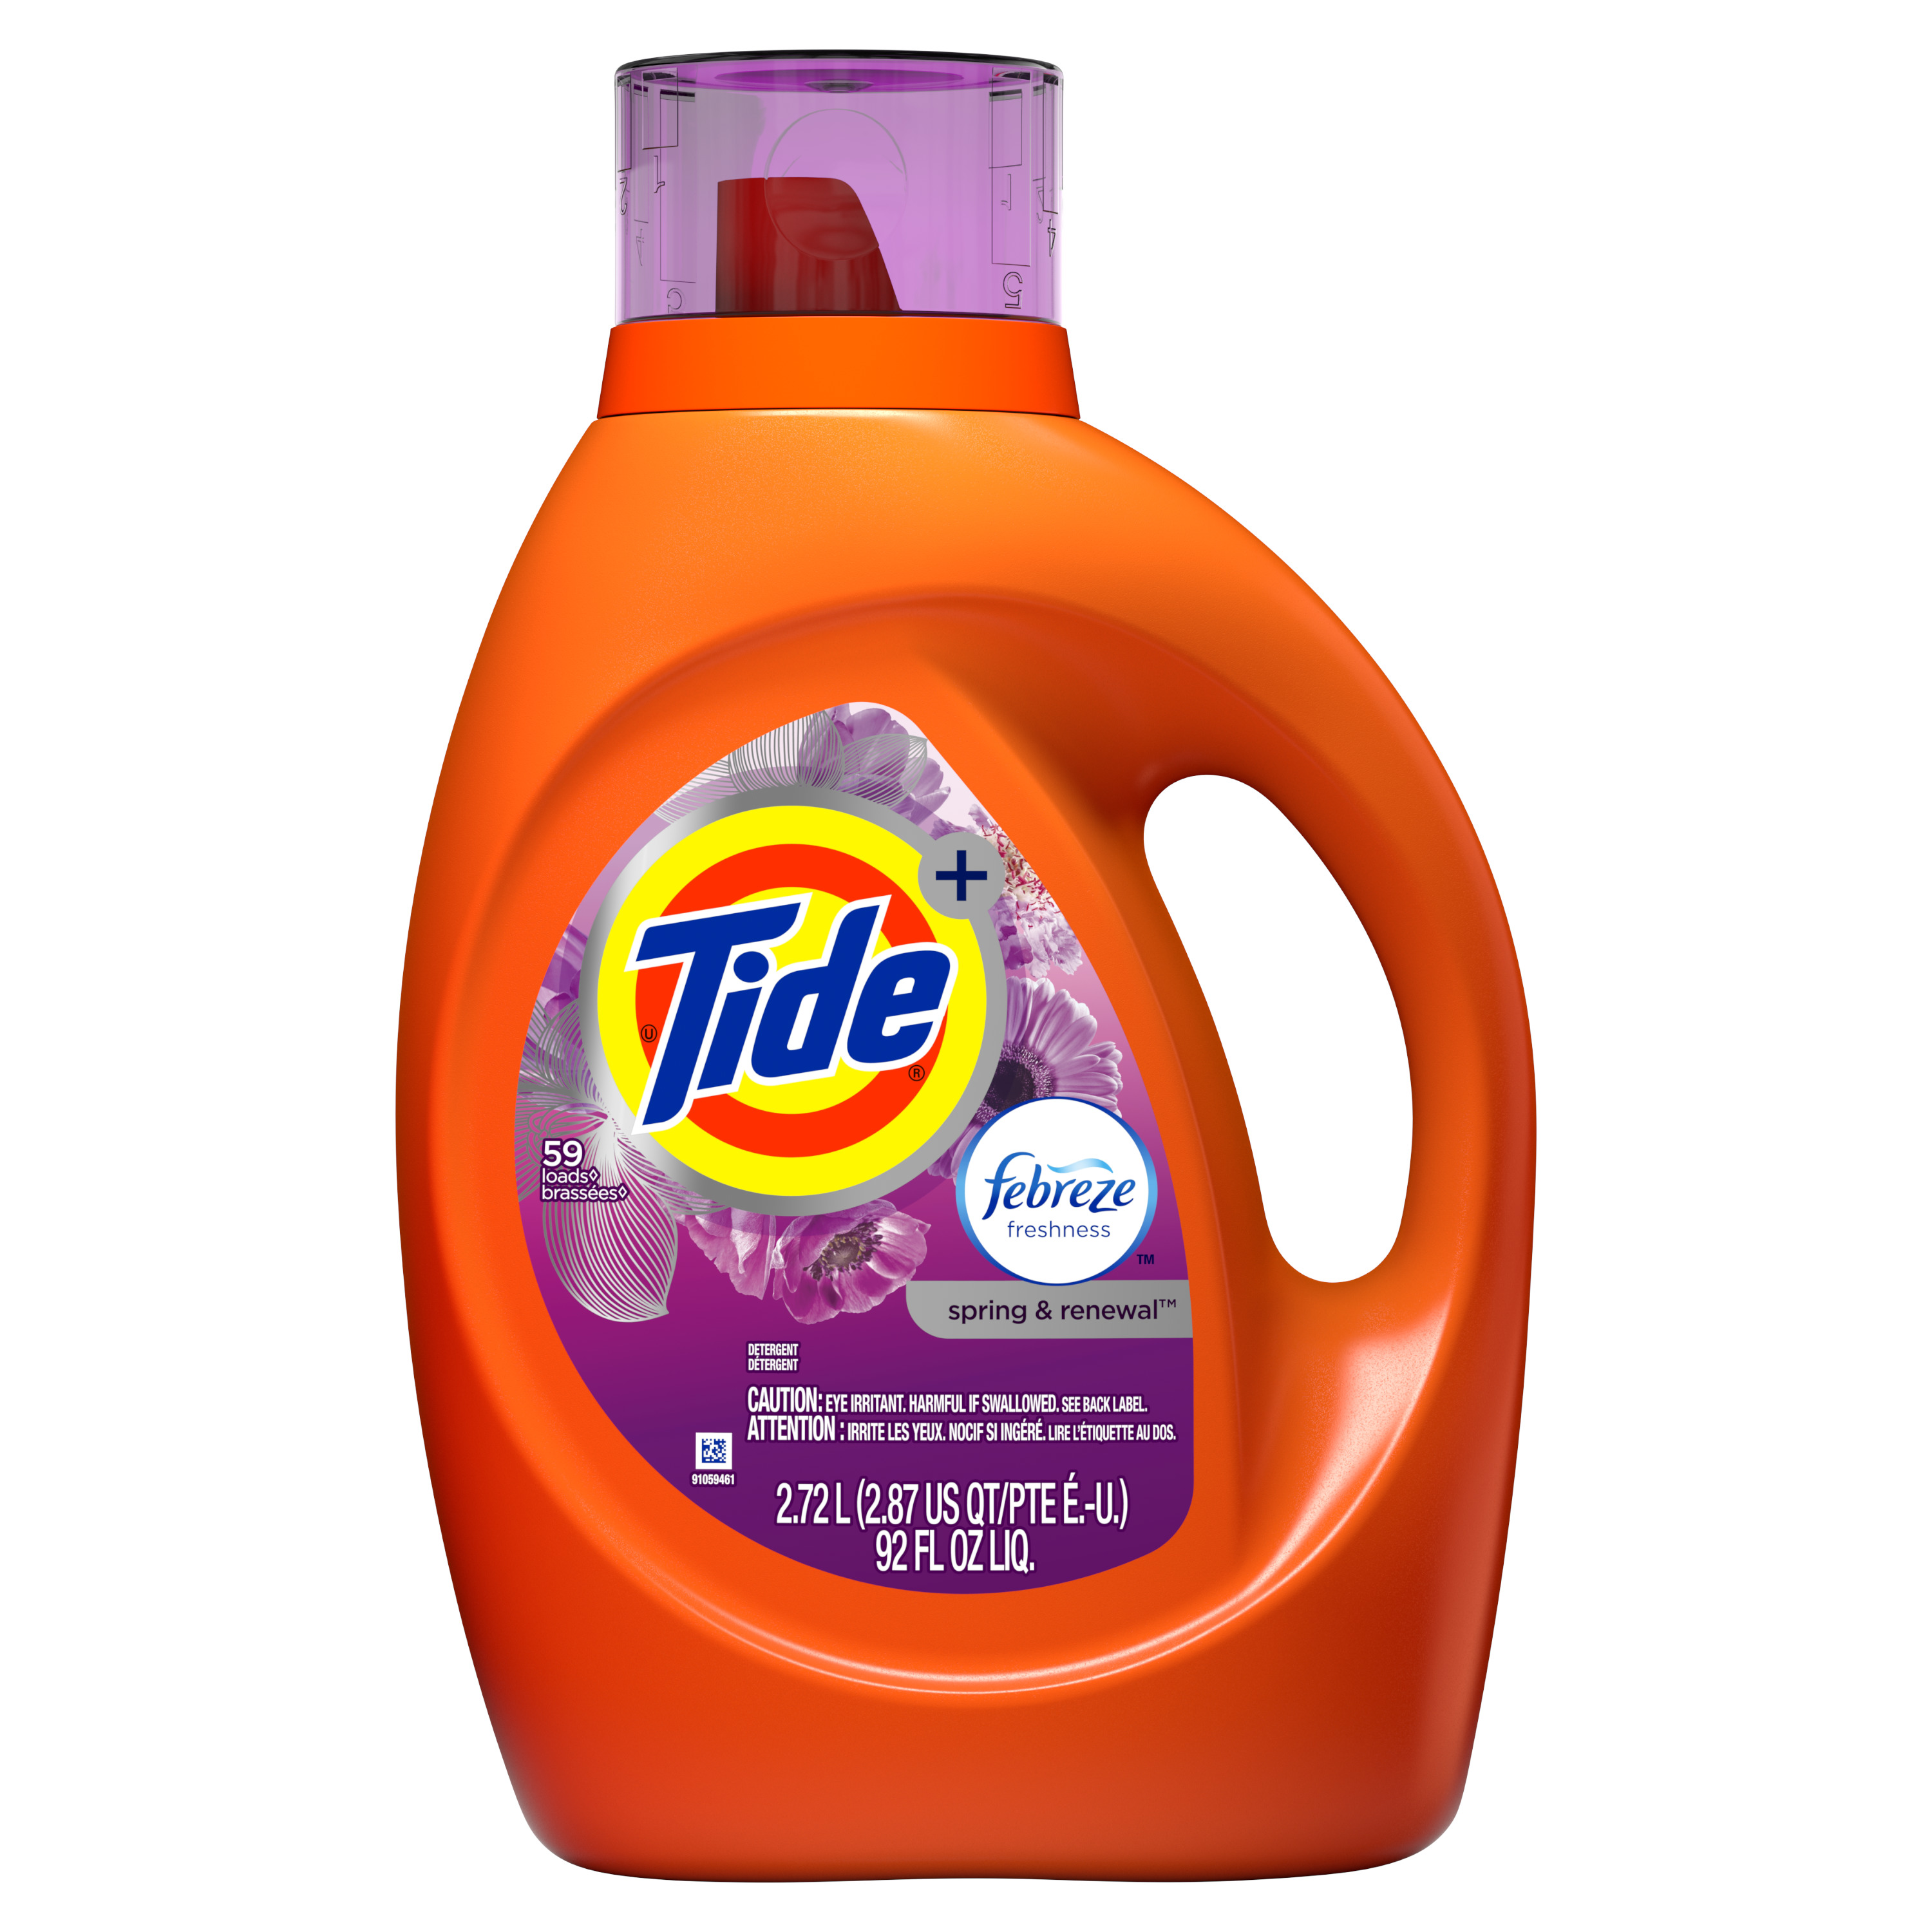 Tide plus Febreze Freshness Spring And Renewal Scent HE Turbo Clean Liquid Laundry Detergent, 92 oz, 59 loads